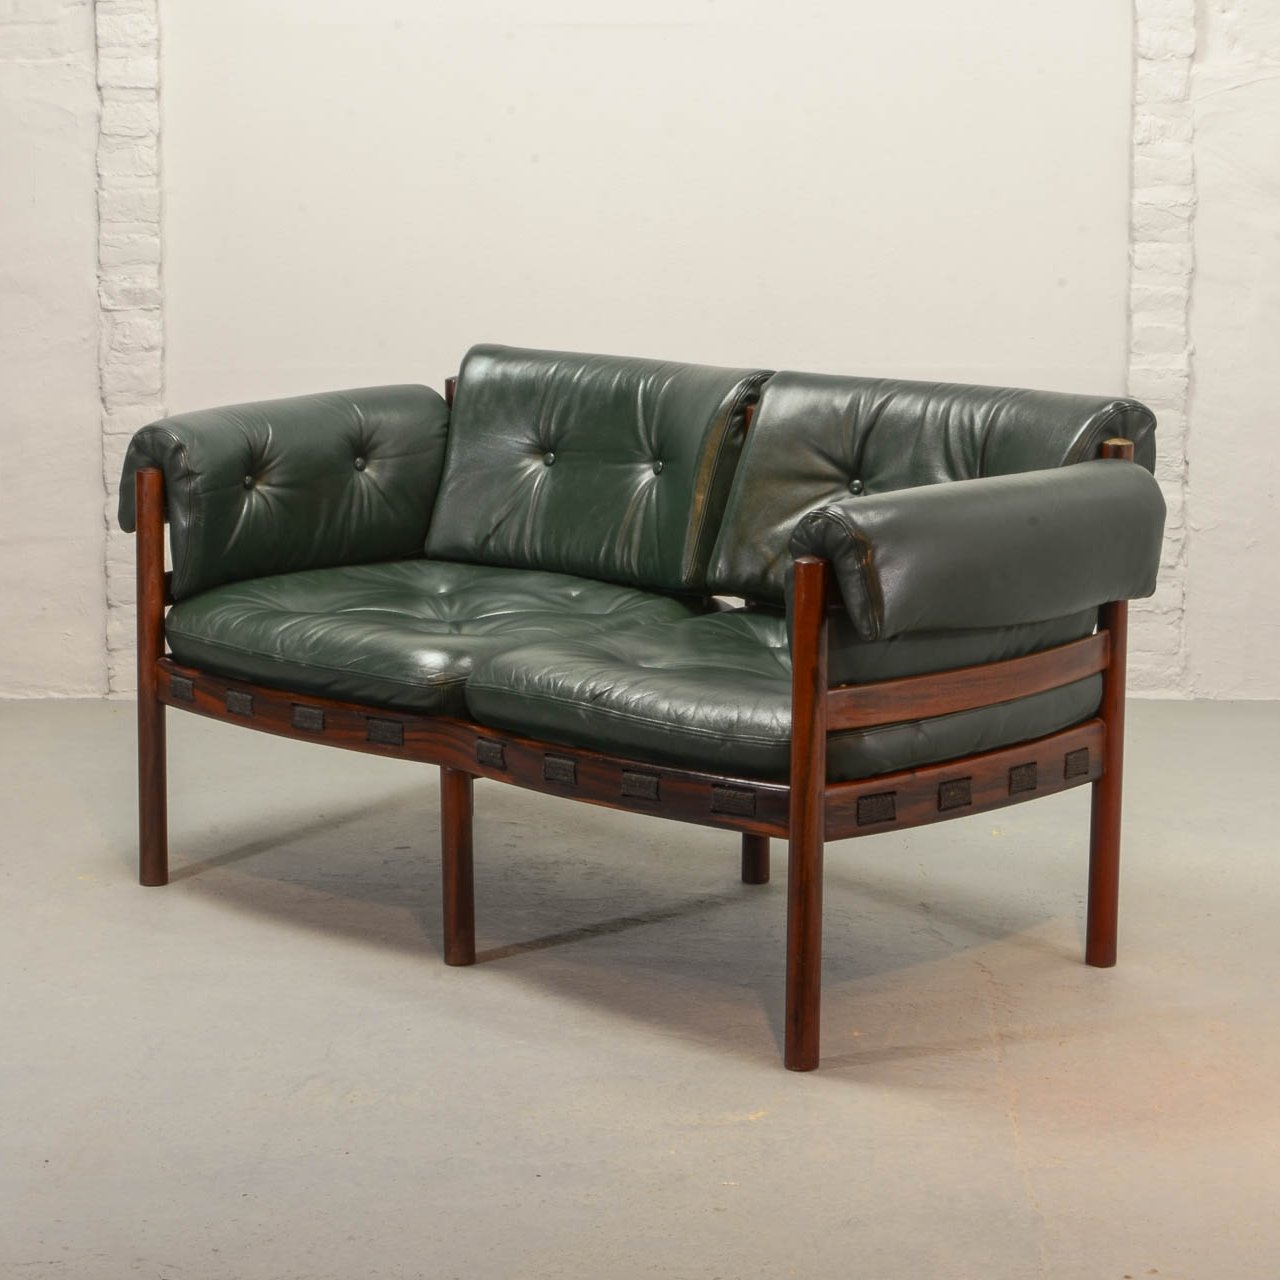 Mid Century Design Rosewood Green Leather Sofa By Sven Ellekaer For Coja 1960s 76132